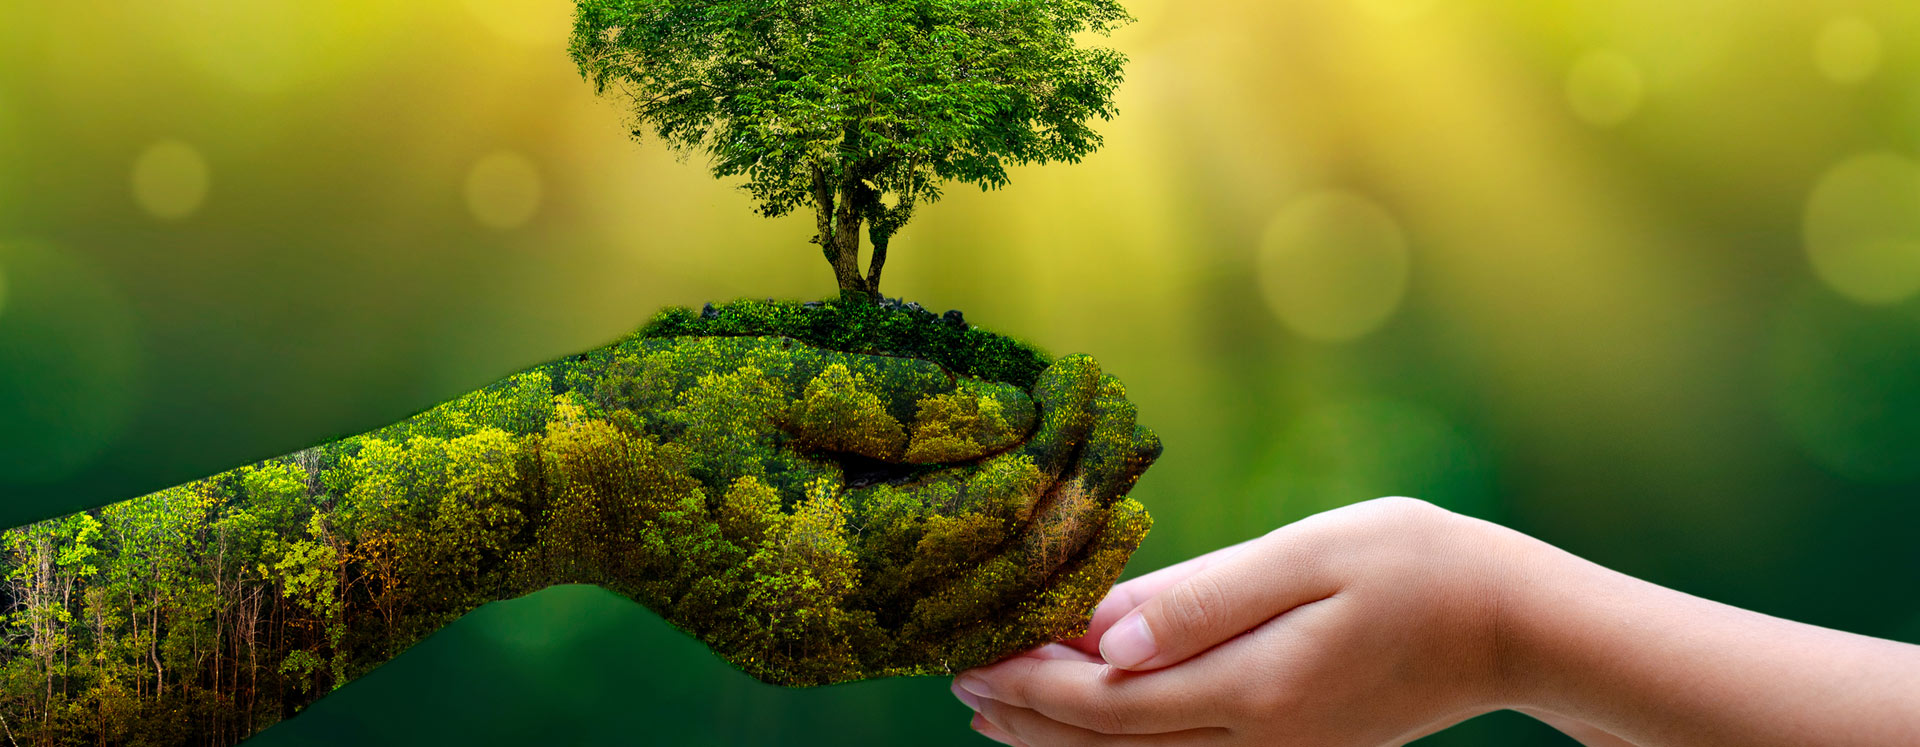 Human reaching out to a nature hand growing a tree   Cypress Cove Landkeepers